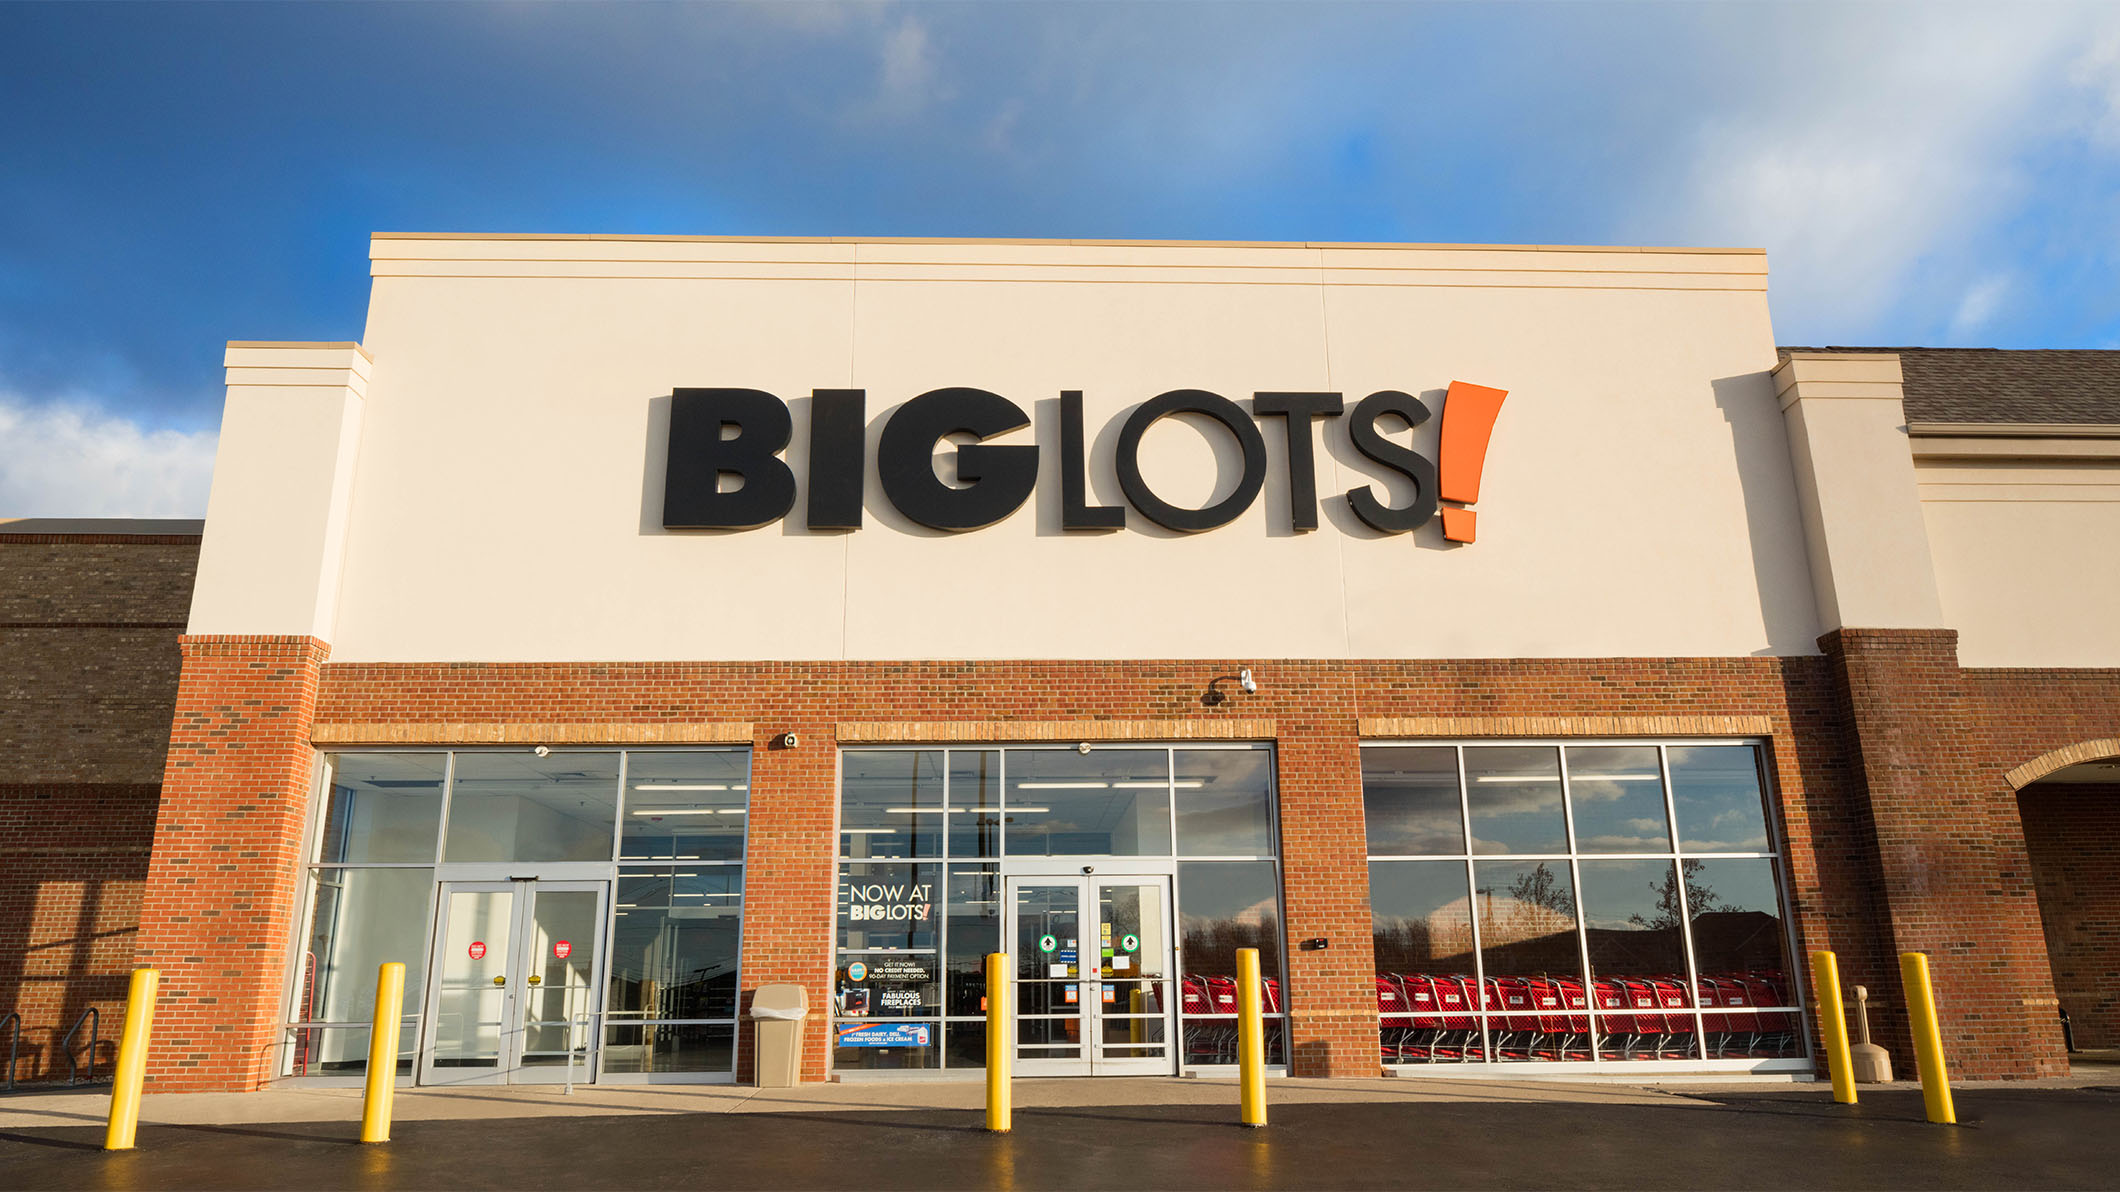 Along with big 4th of July sales on summer party goods, swimsuits, sandals and beach towels, also plan on the end of the month for savings on barbecue grills and patio furniture as stores make way for big back-to-school sales in August.